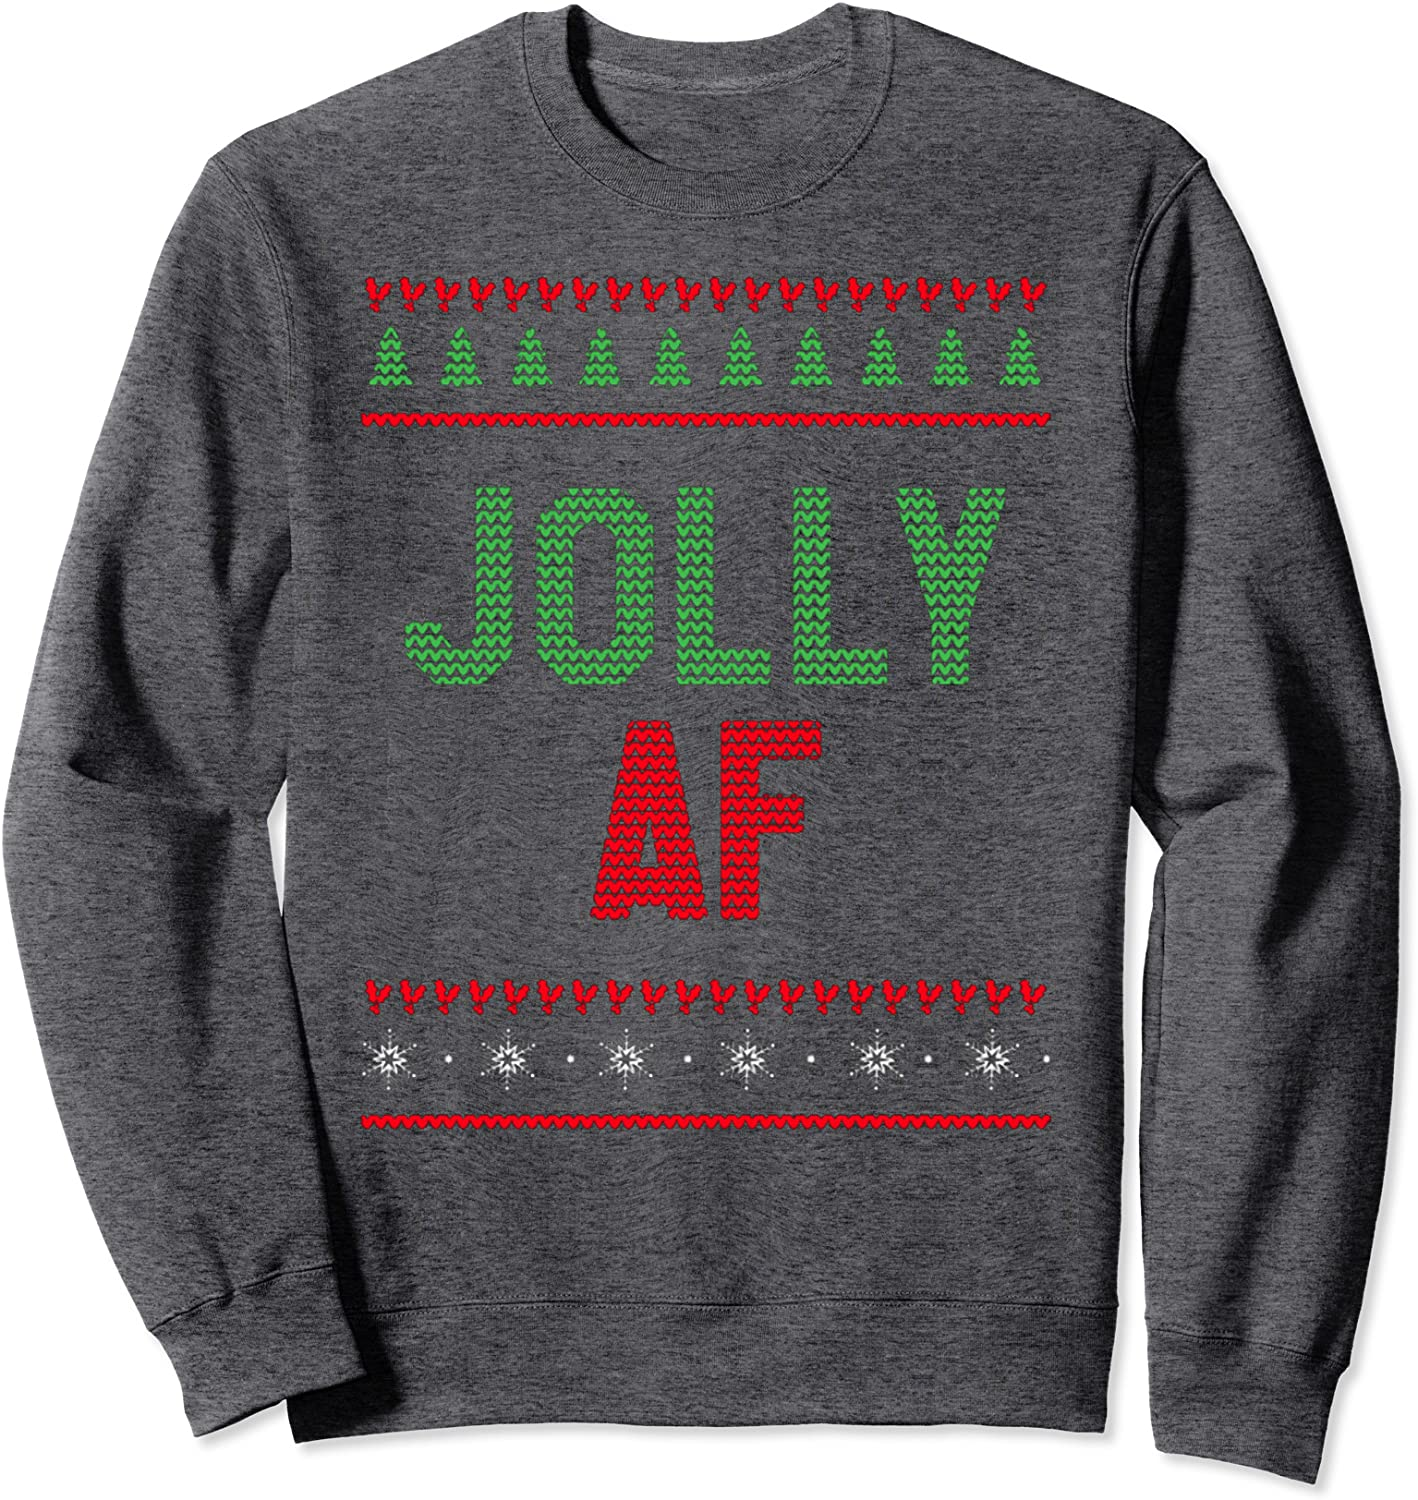 Christmas Sweater For Men Jolly Ugly Christmas Sweater Ornament Holiday Shirt This Guy Loves Christmas Sweatshirt Christmas Shirt